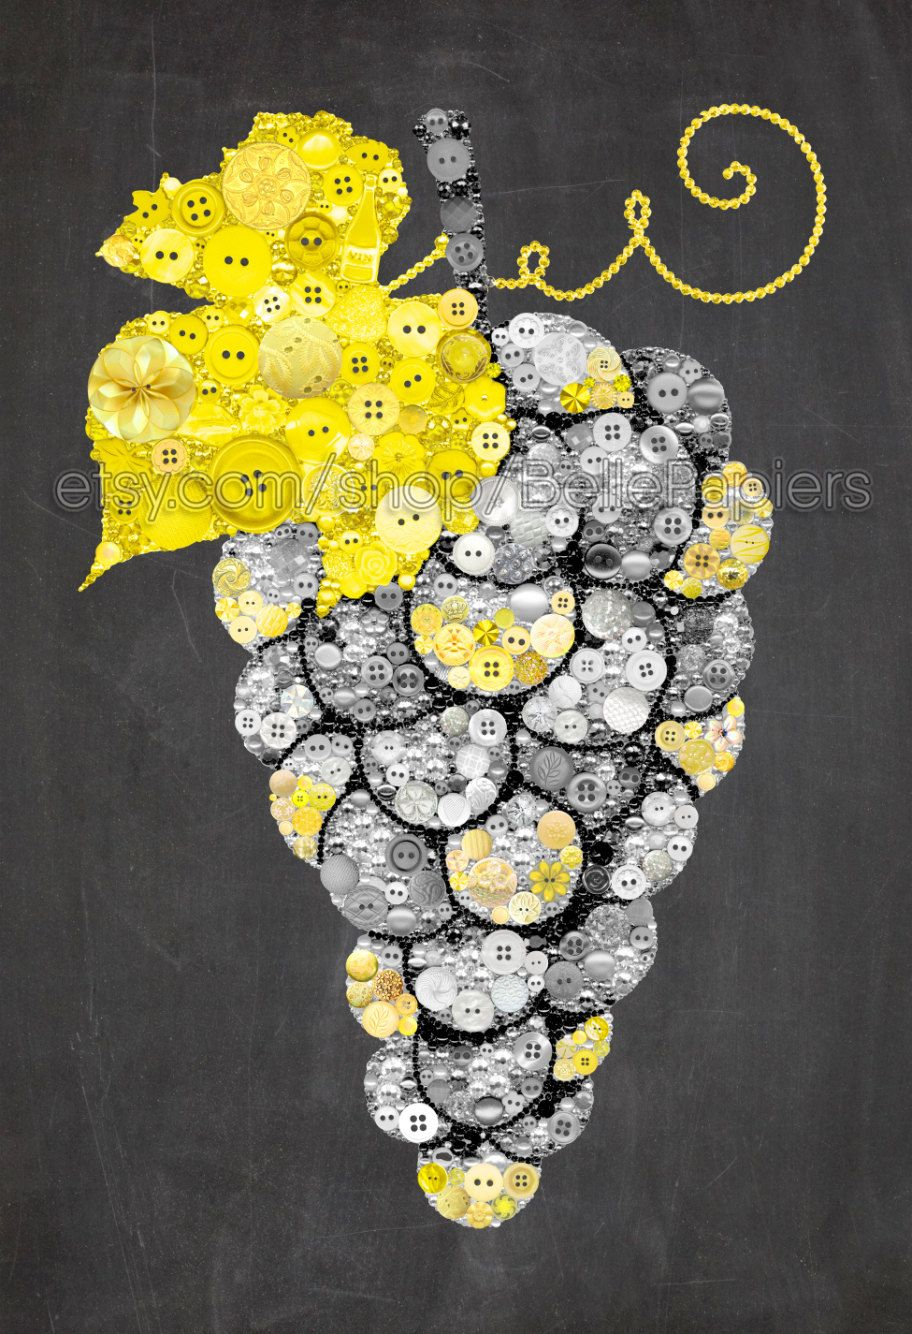 Fourth Anniversary Grape Decorations | Kitchen Art | Fruit Wall Art ...